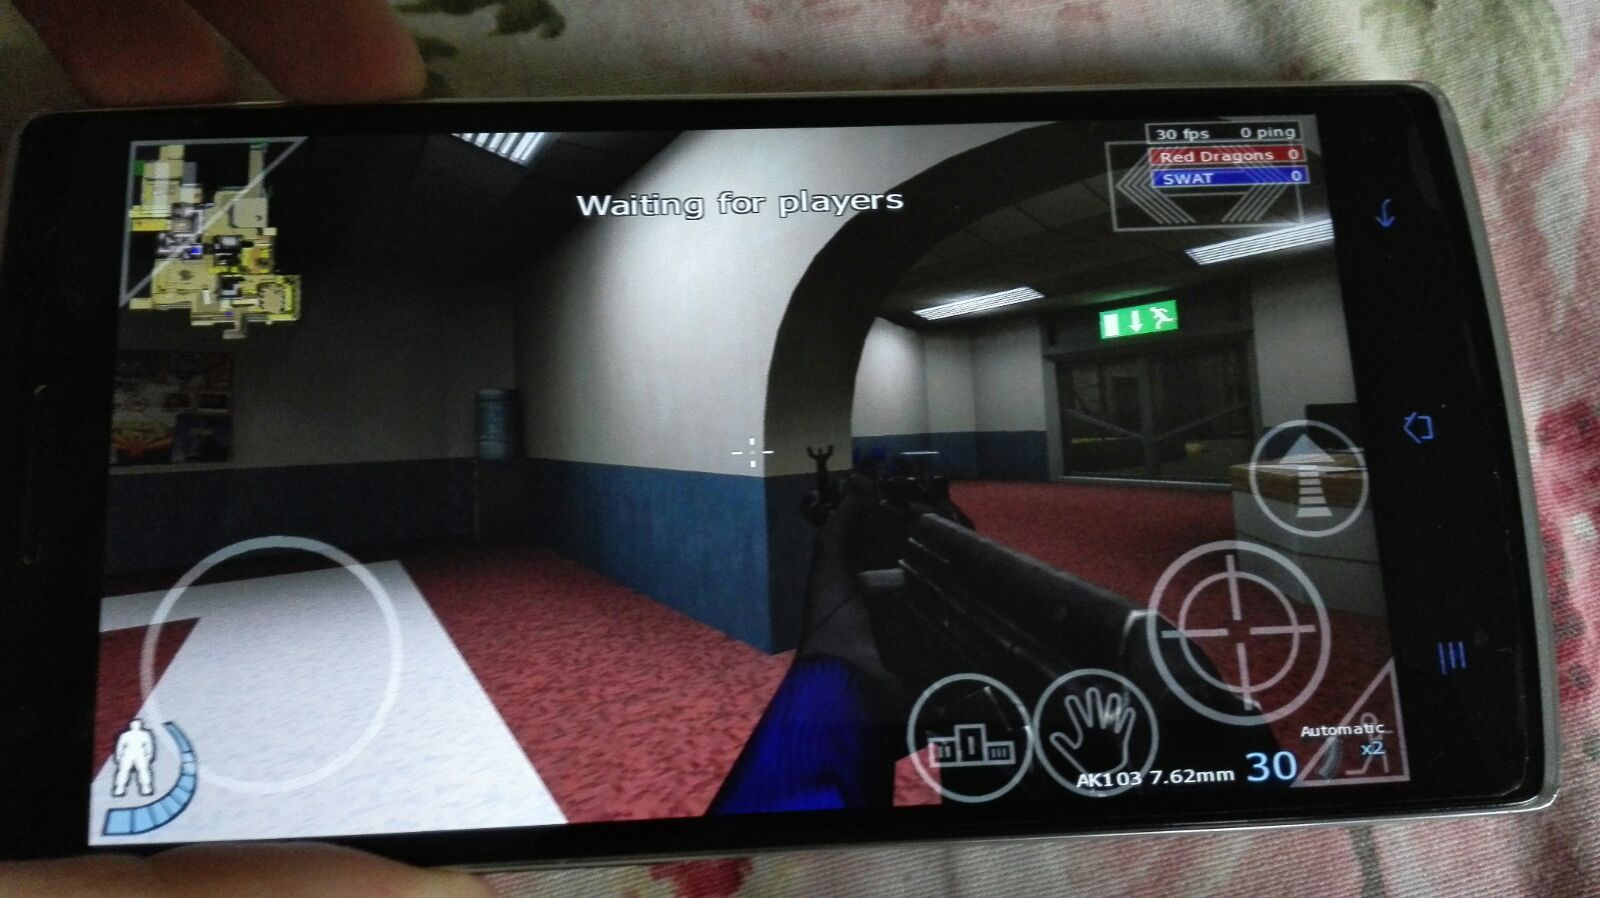 Play Urban Terror, Open Arena or Quake 3 in Android